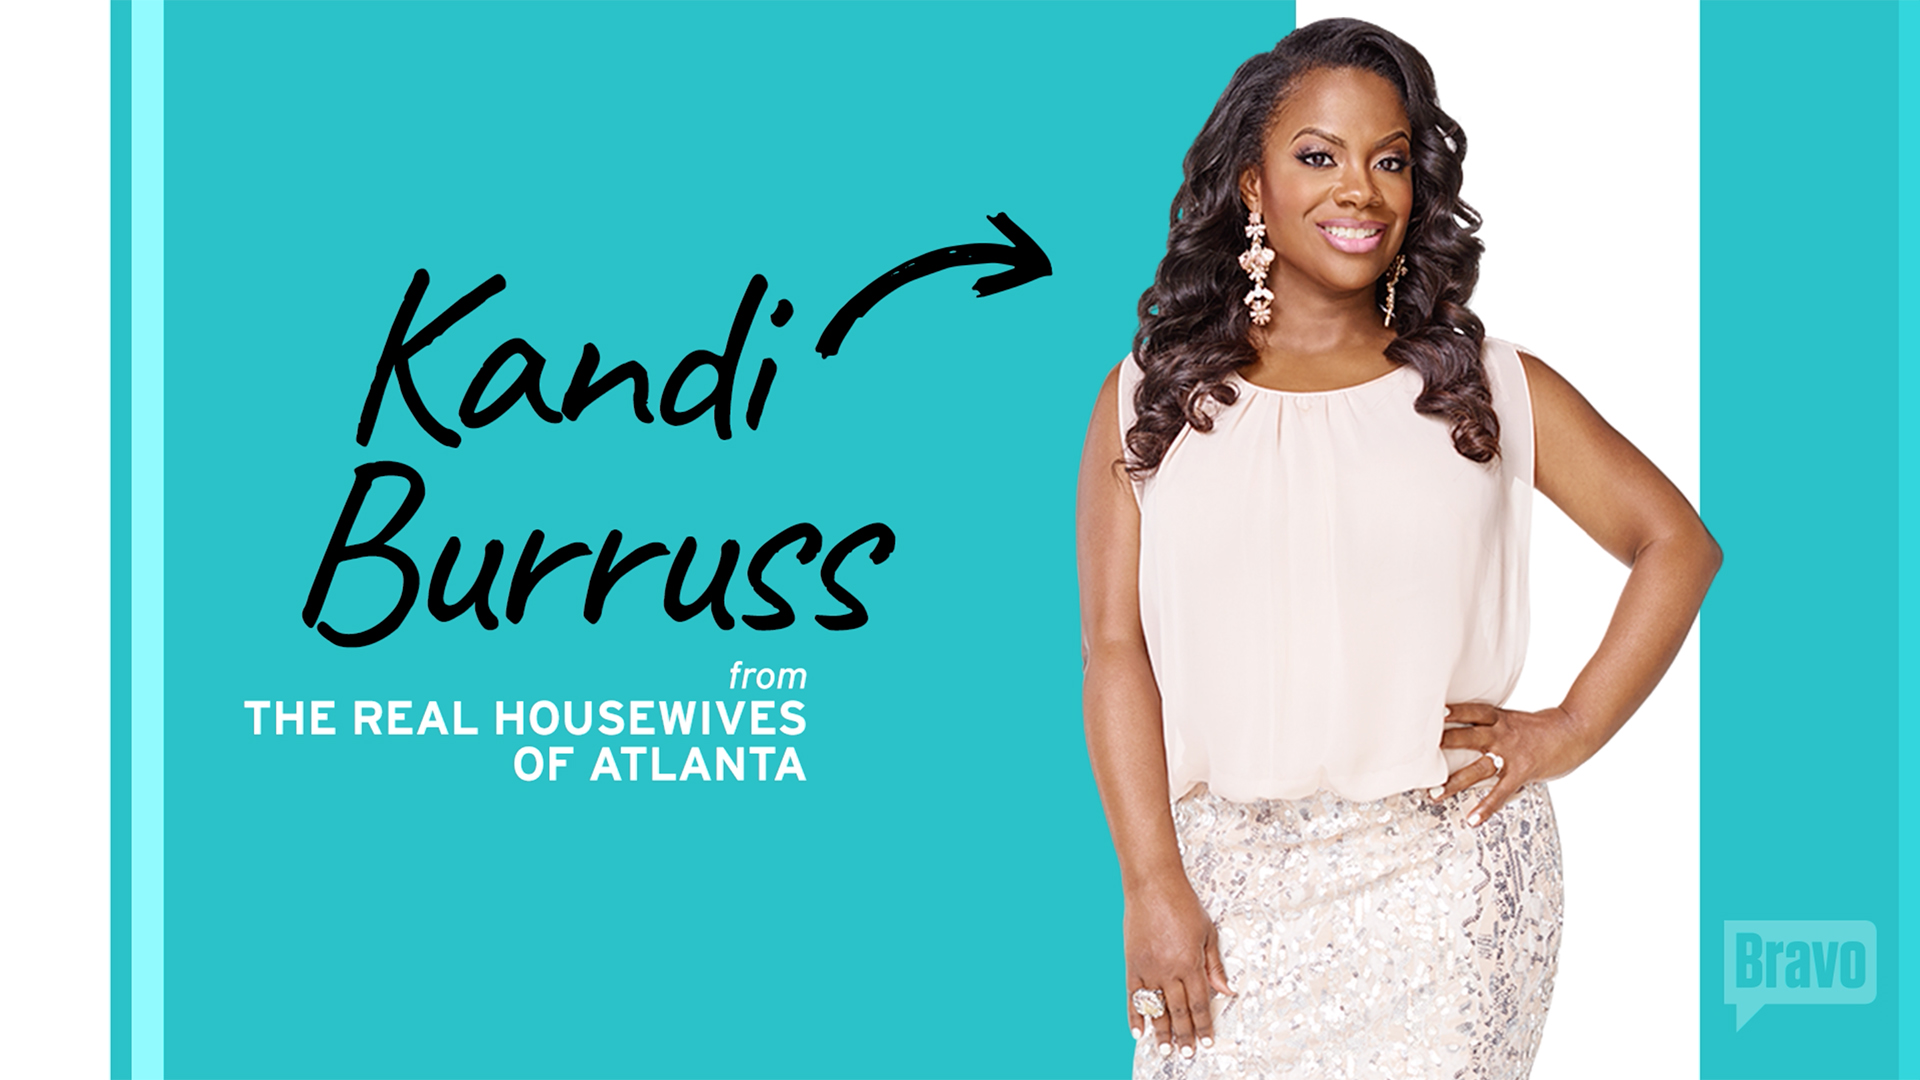 The Last Thing: Kandi Burruss